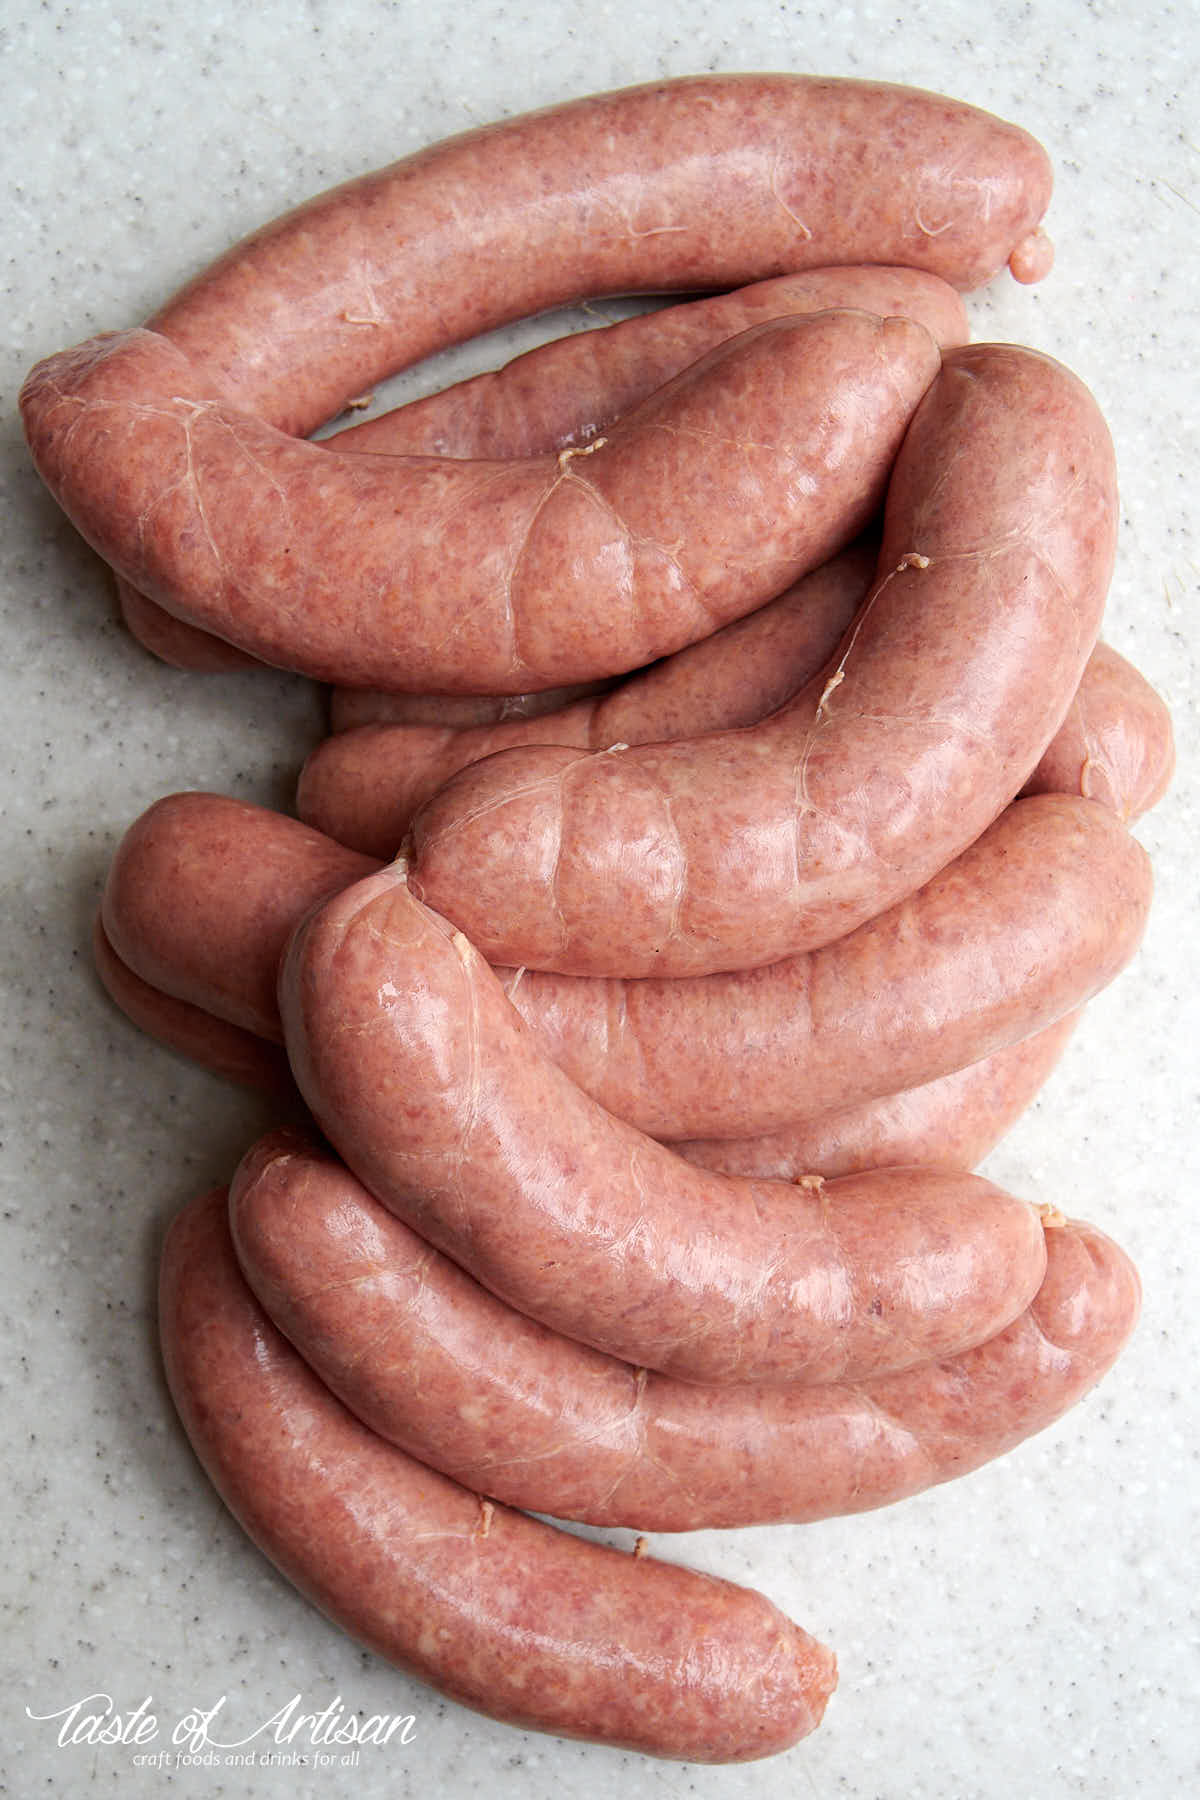 Raw Bockwurst sausage links on a grey table surface.